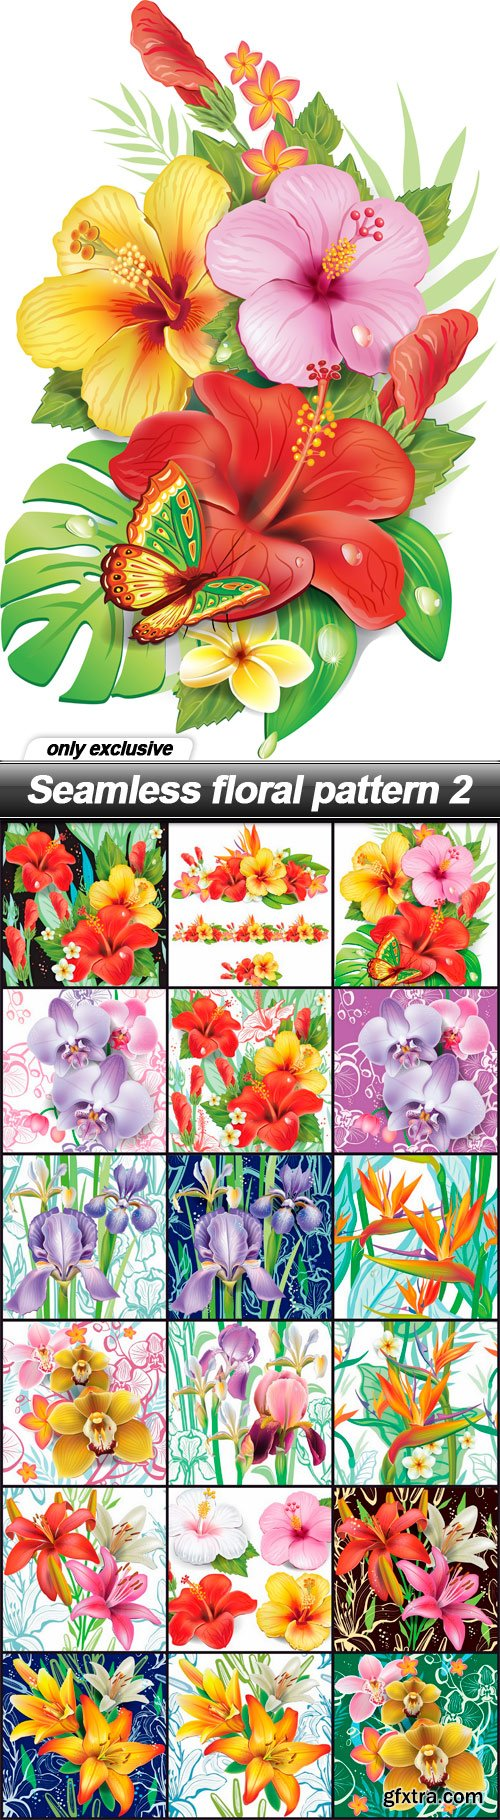 Seamless floral pattern 2 - 18 EPS